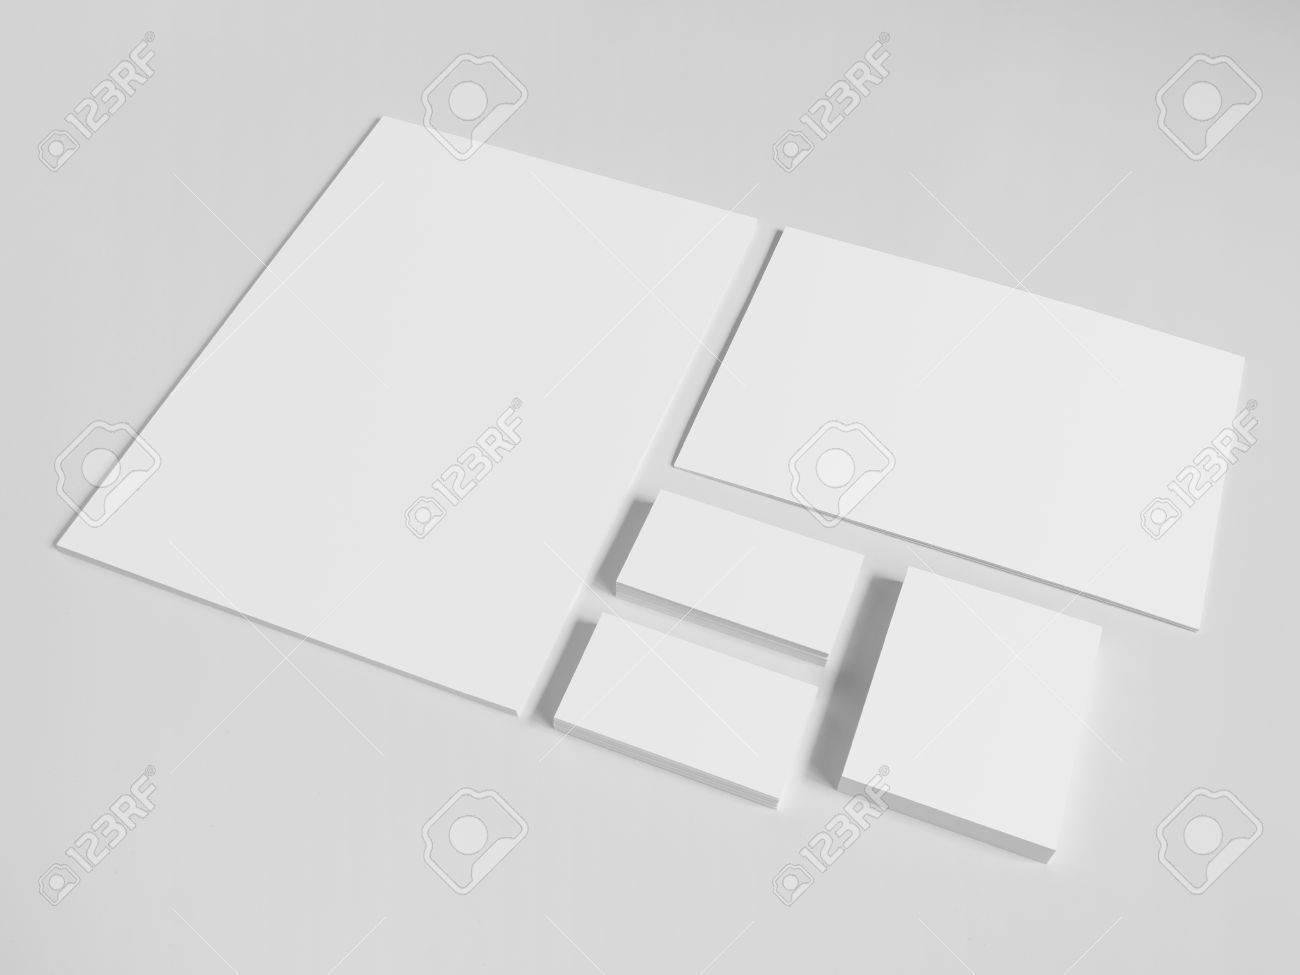 Blank Business Cards With A Pile Of Papers And Envelopes. Mockup ...